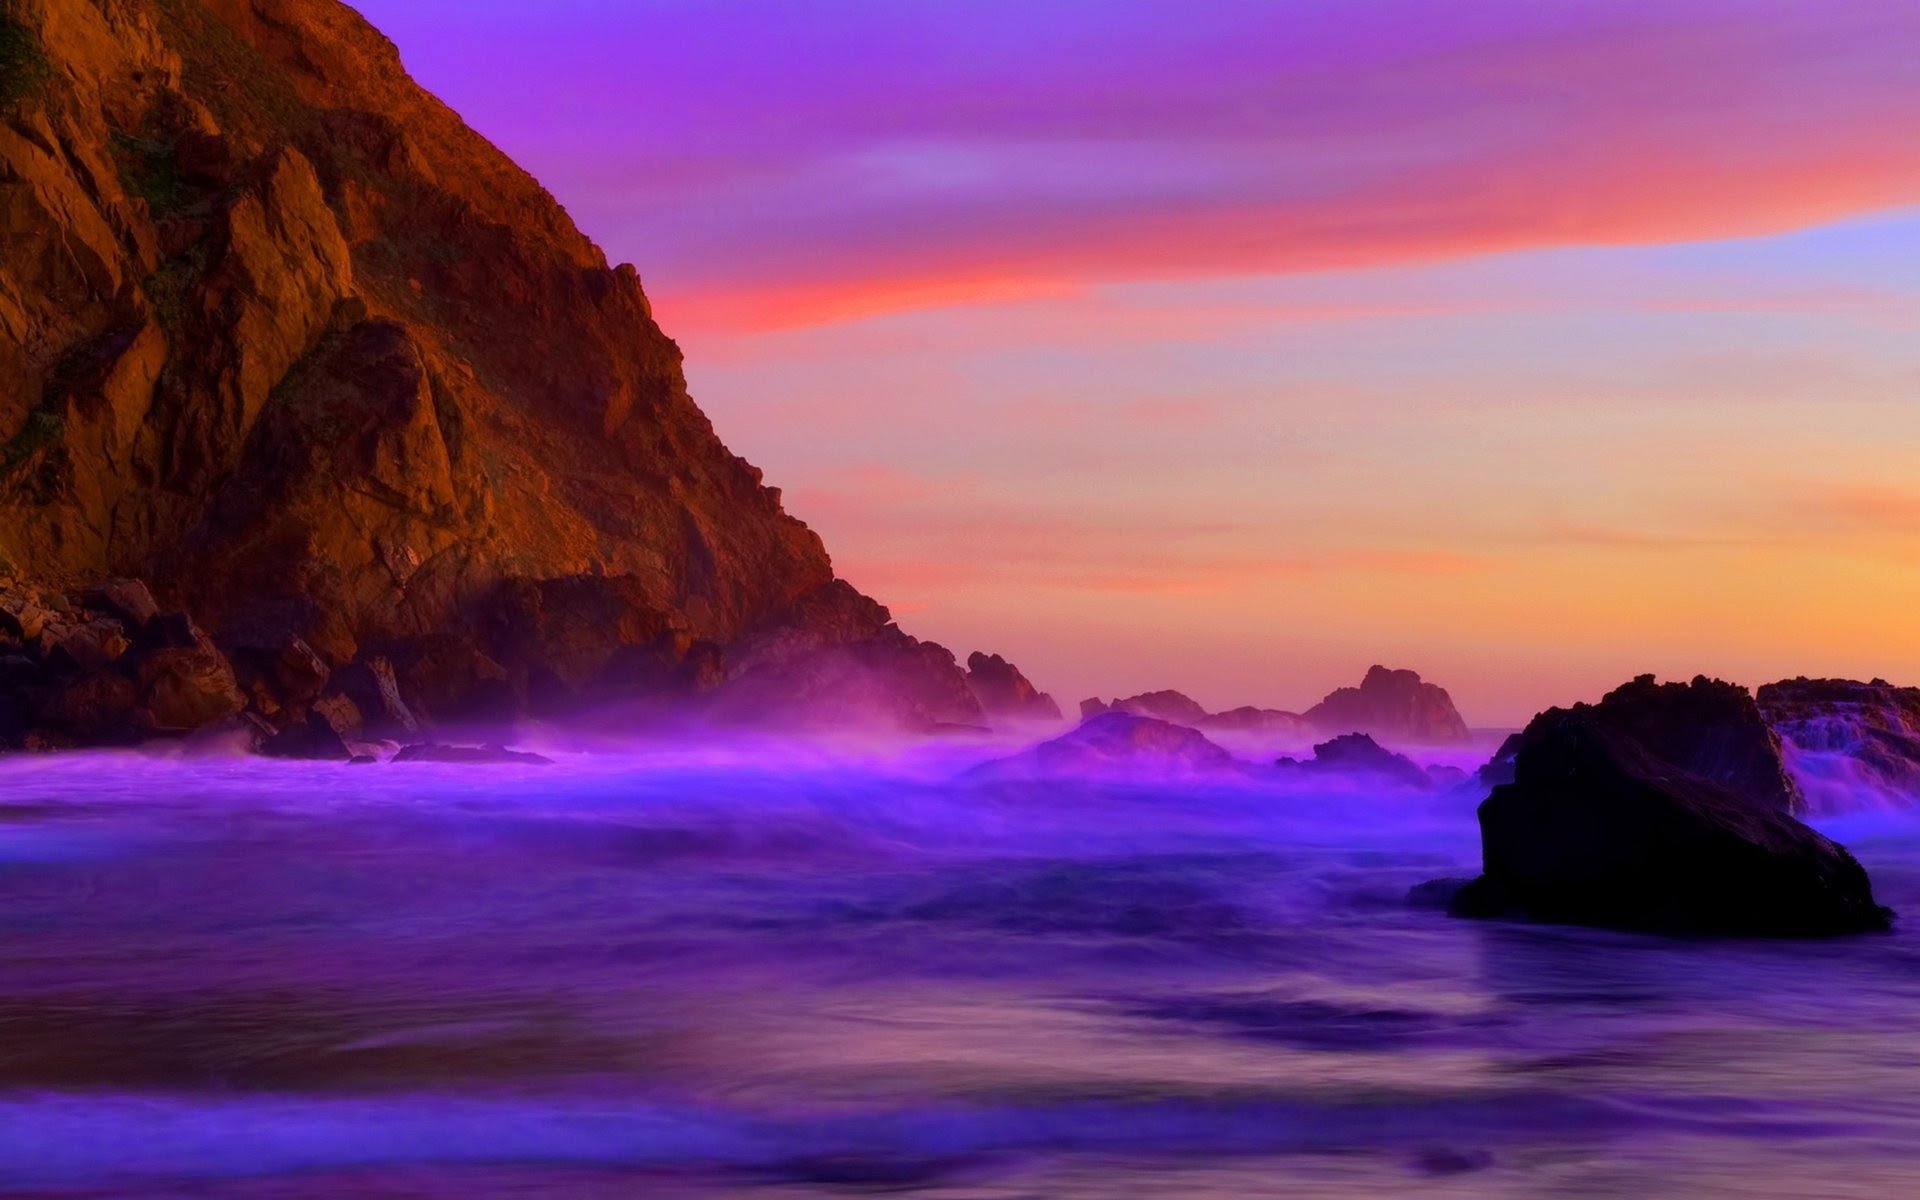 Ocean Wallpapers High Resolution (71+ images)